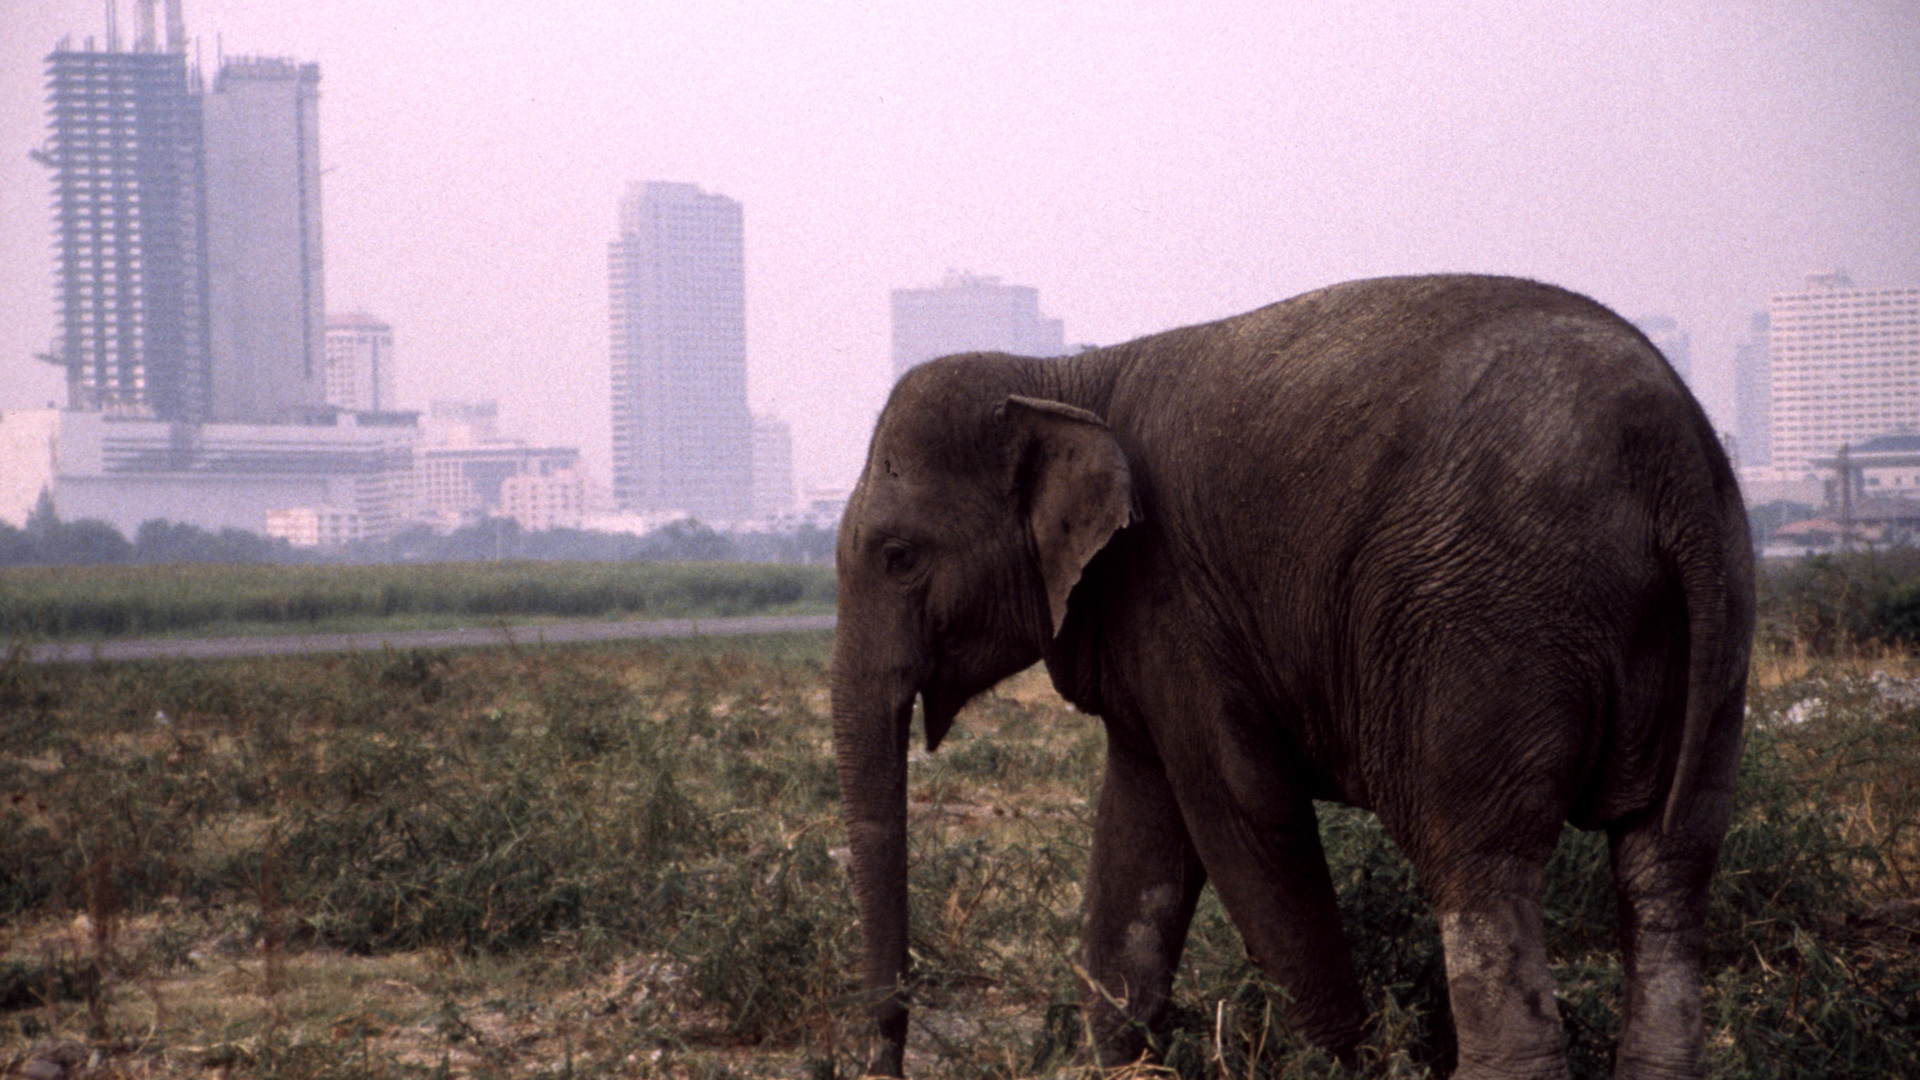 The Urban Elephant | About | Nature | PBS